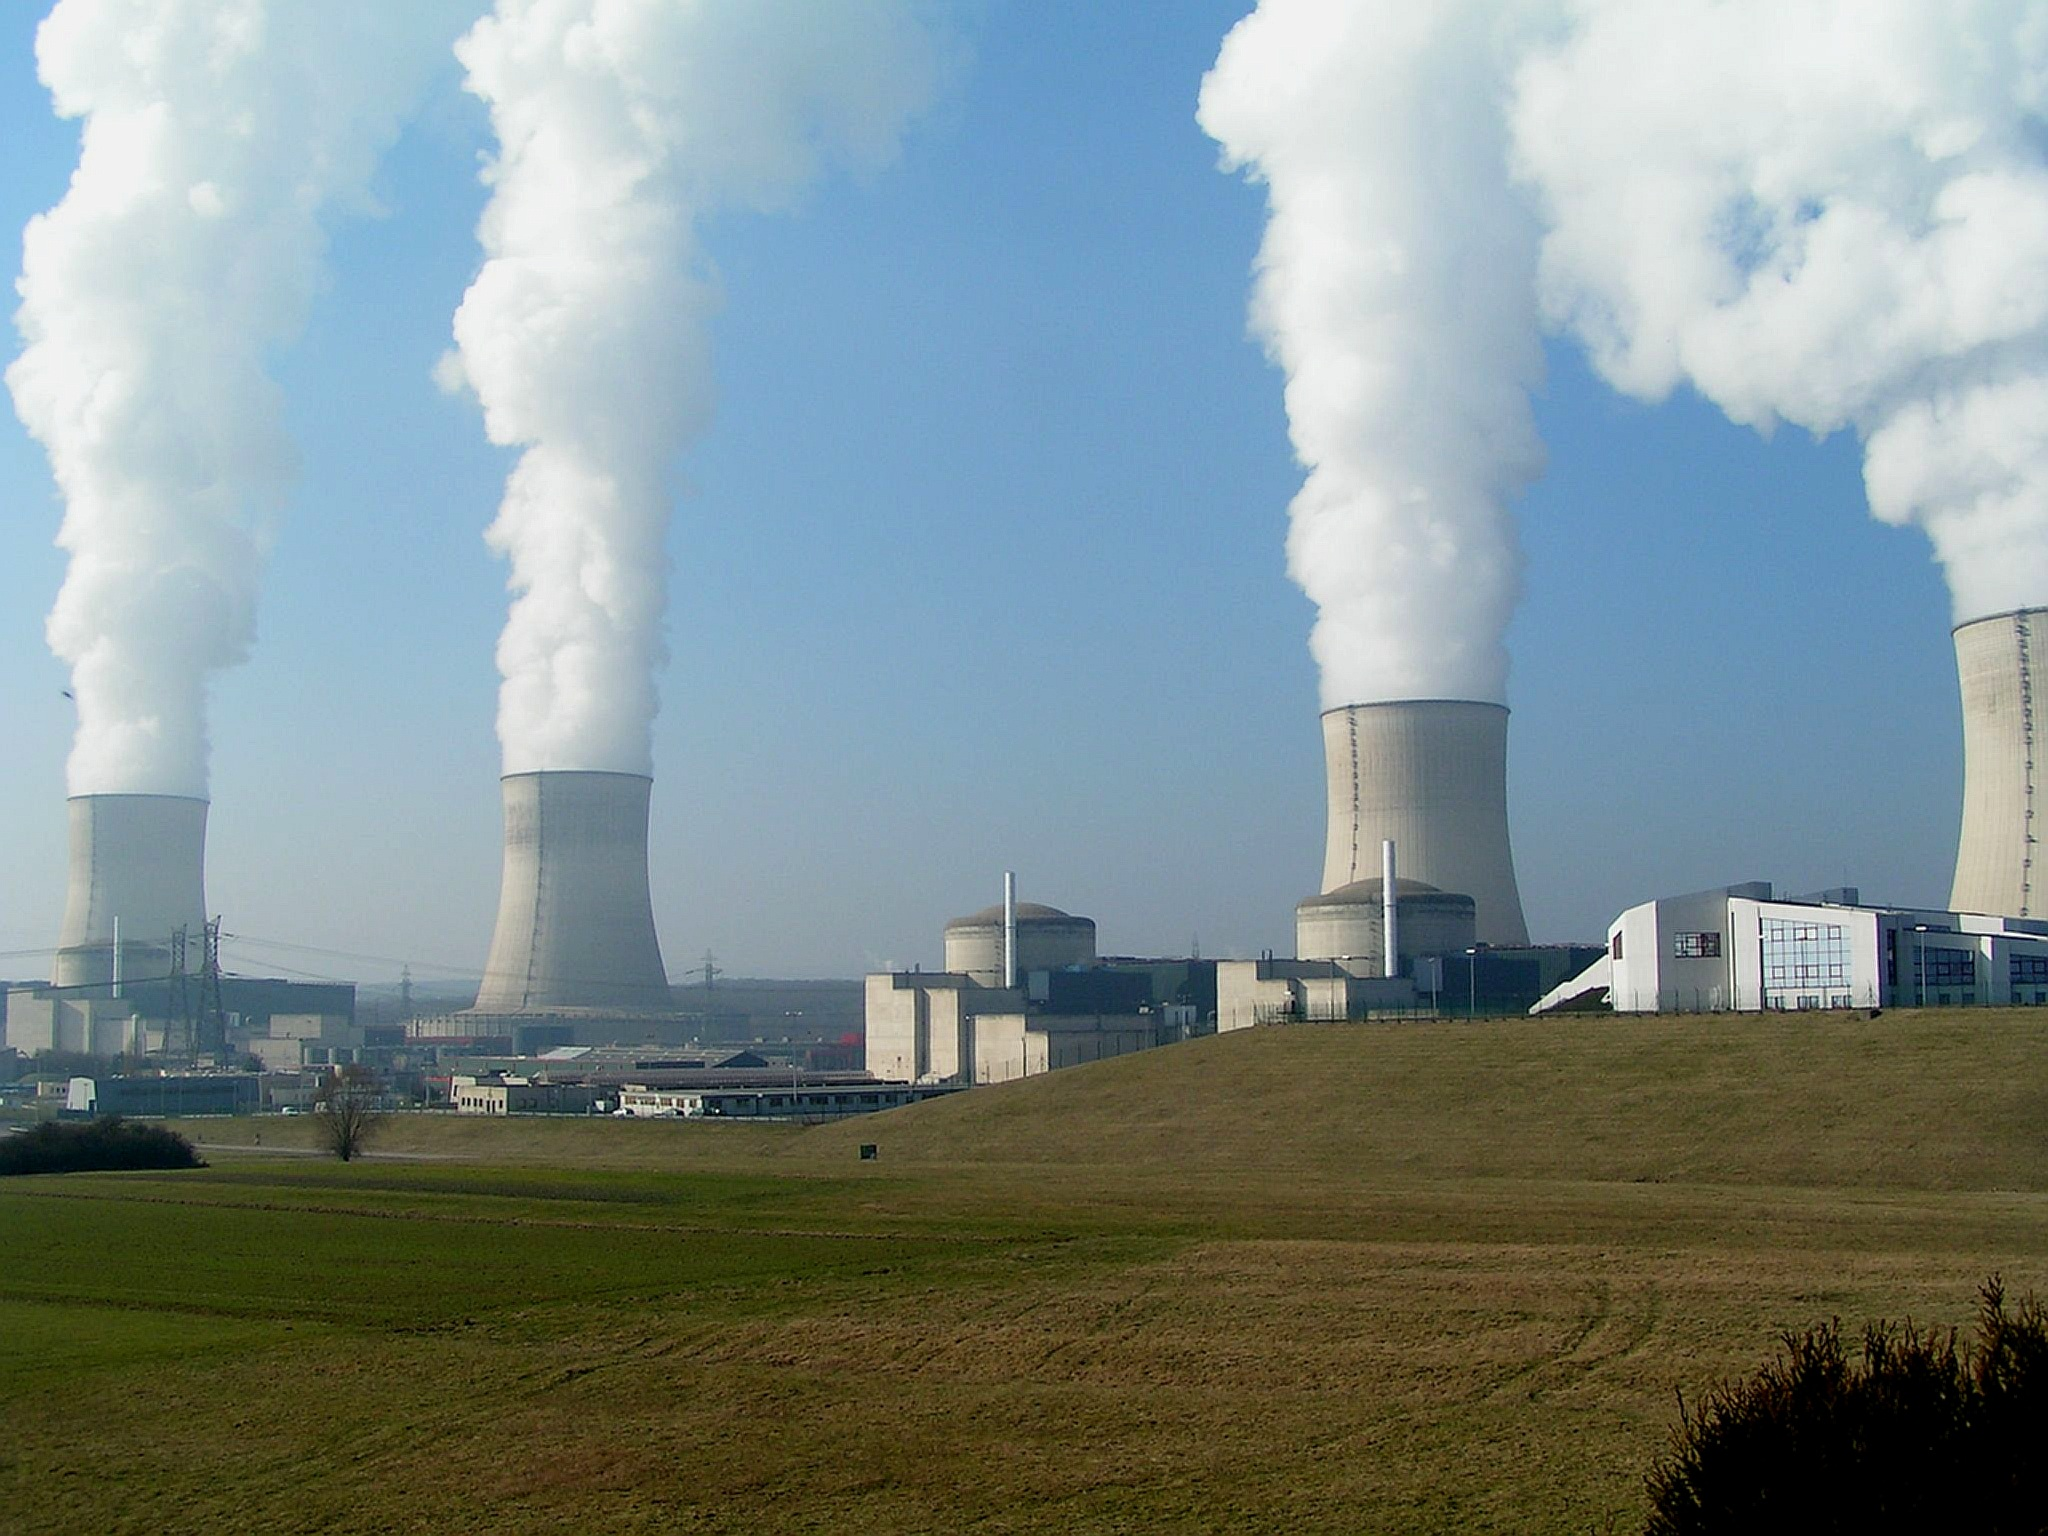 Nuclear_Power_Plant_Cattenom What Is Meant By An Inorganic Society?